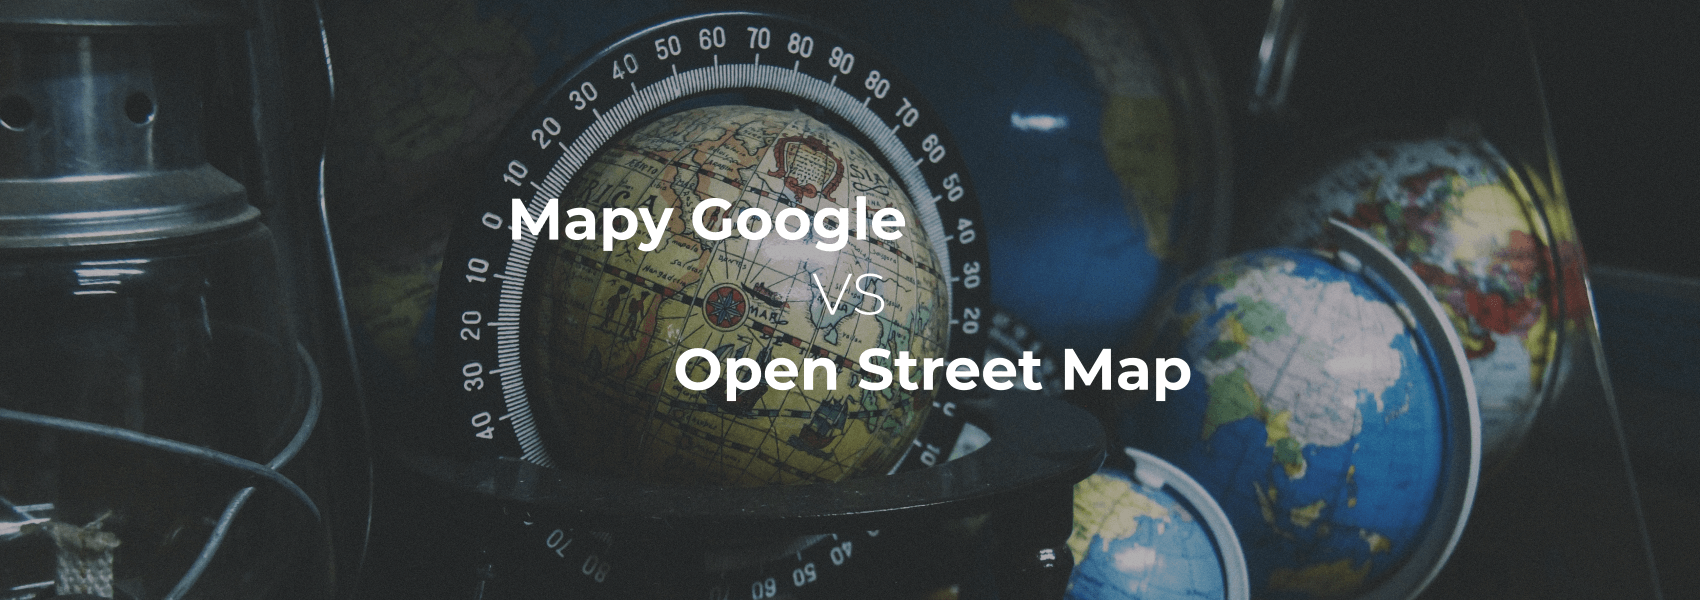 Mapy Google czy Open Street Map